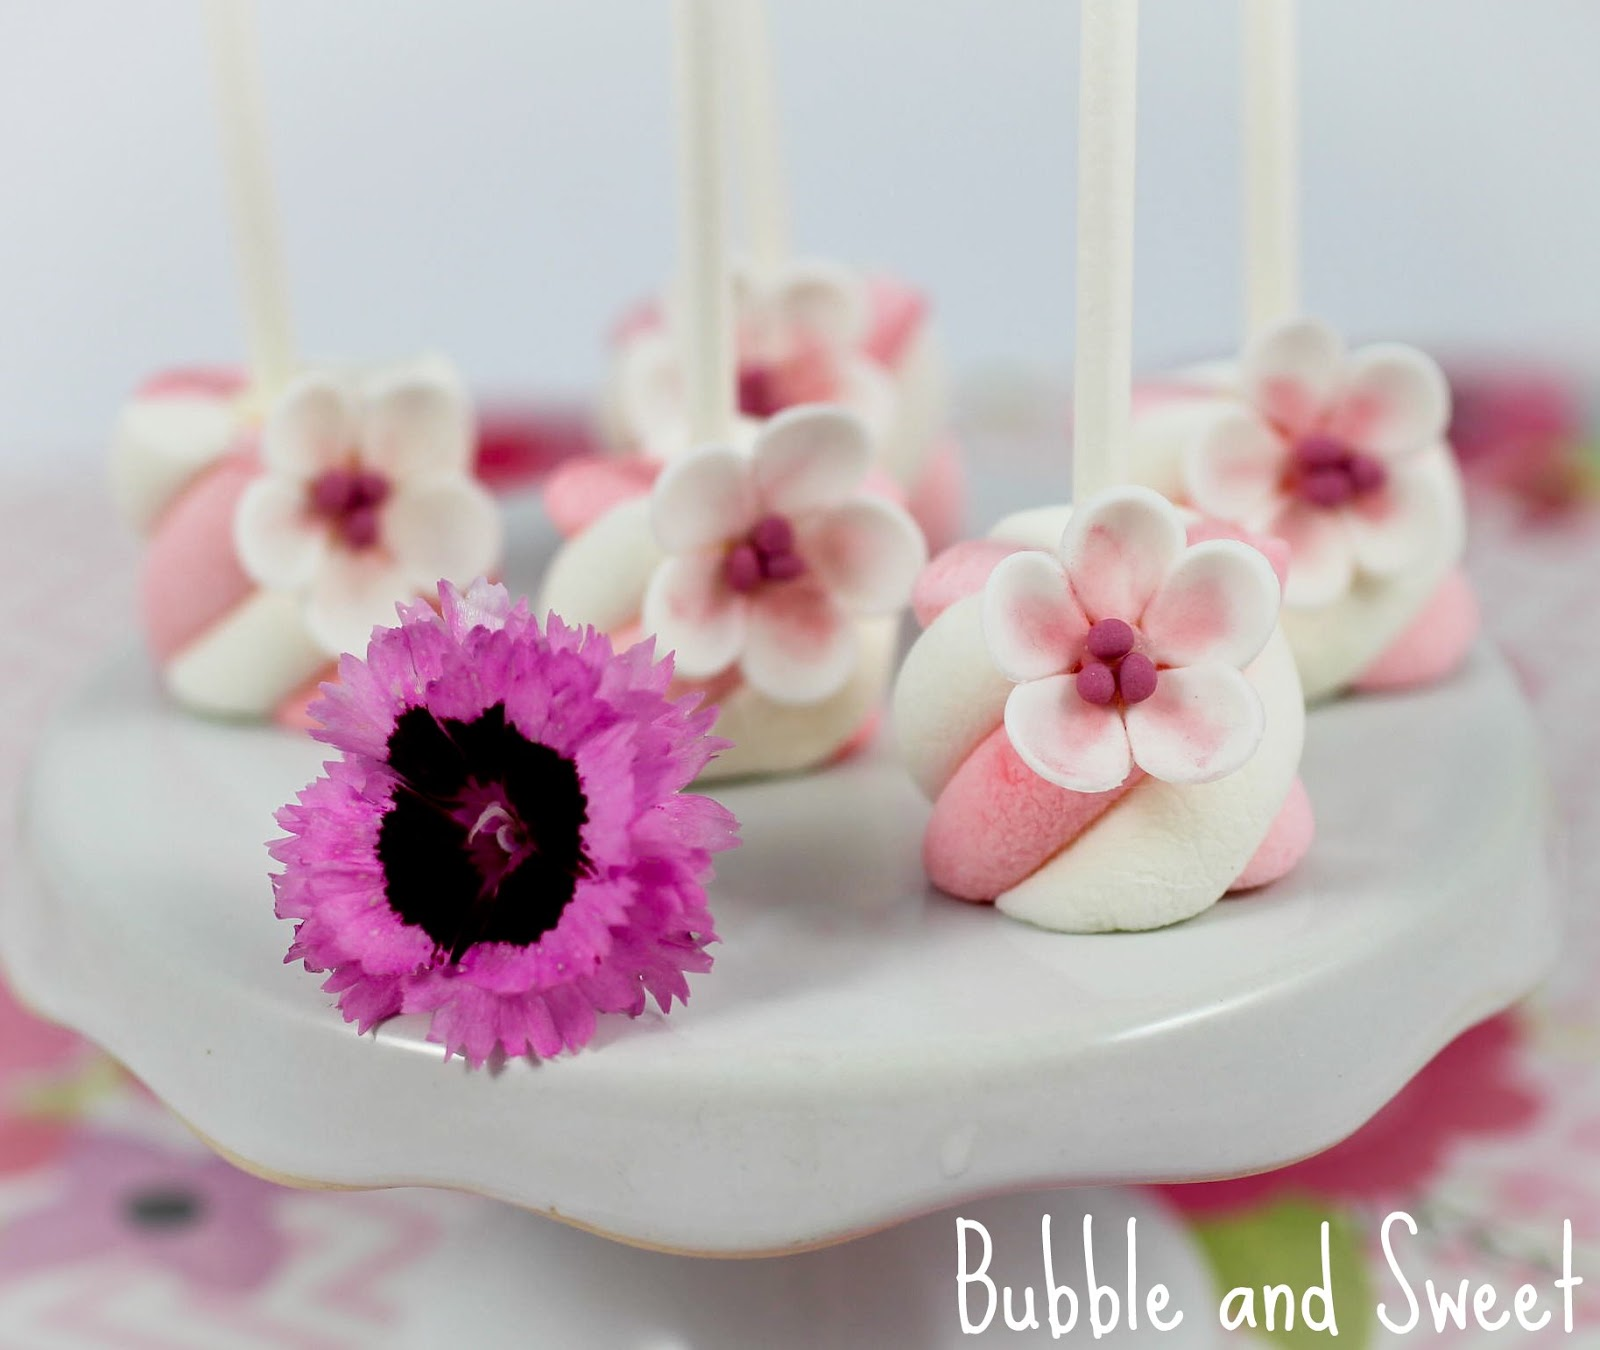 Bubble And Sweet How To Make Simple Sugar Blossoms Flowers From Fondant